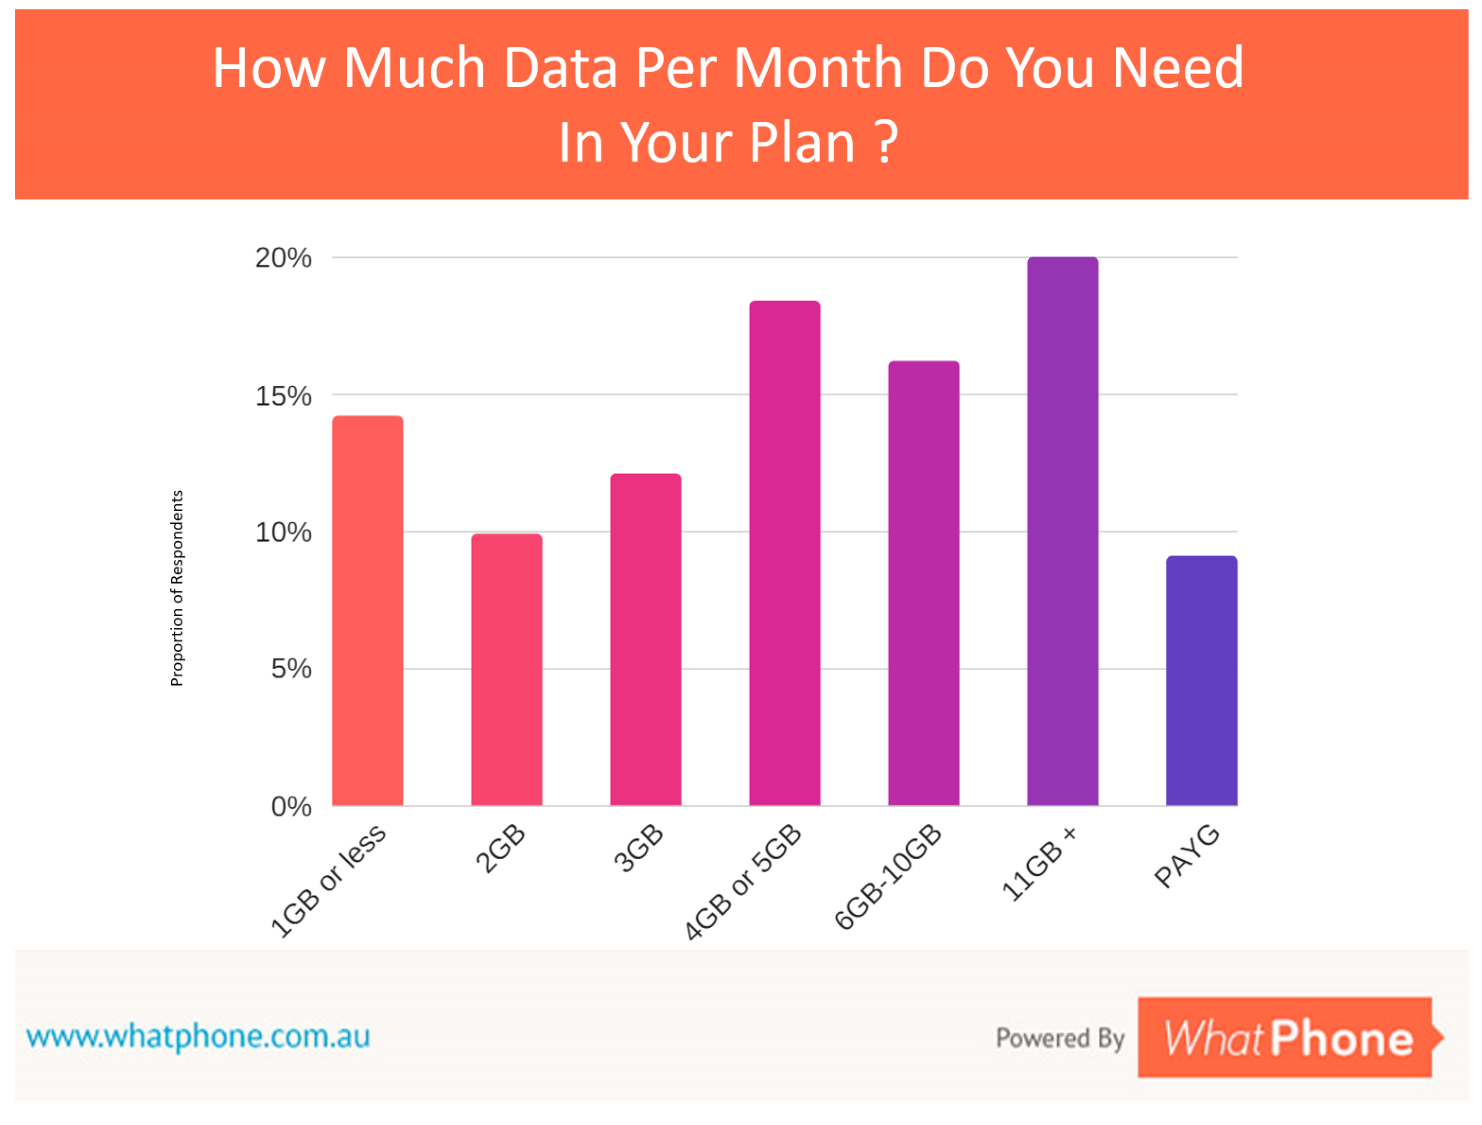 The mean average data usage is around 6GB per month. There are cheap plans which will provide you that.